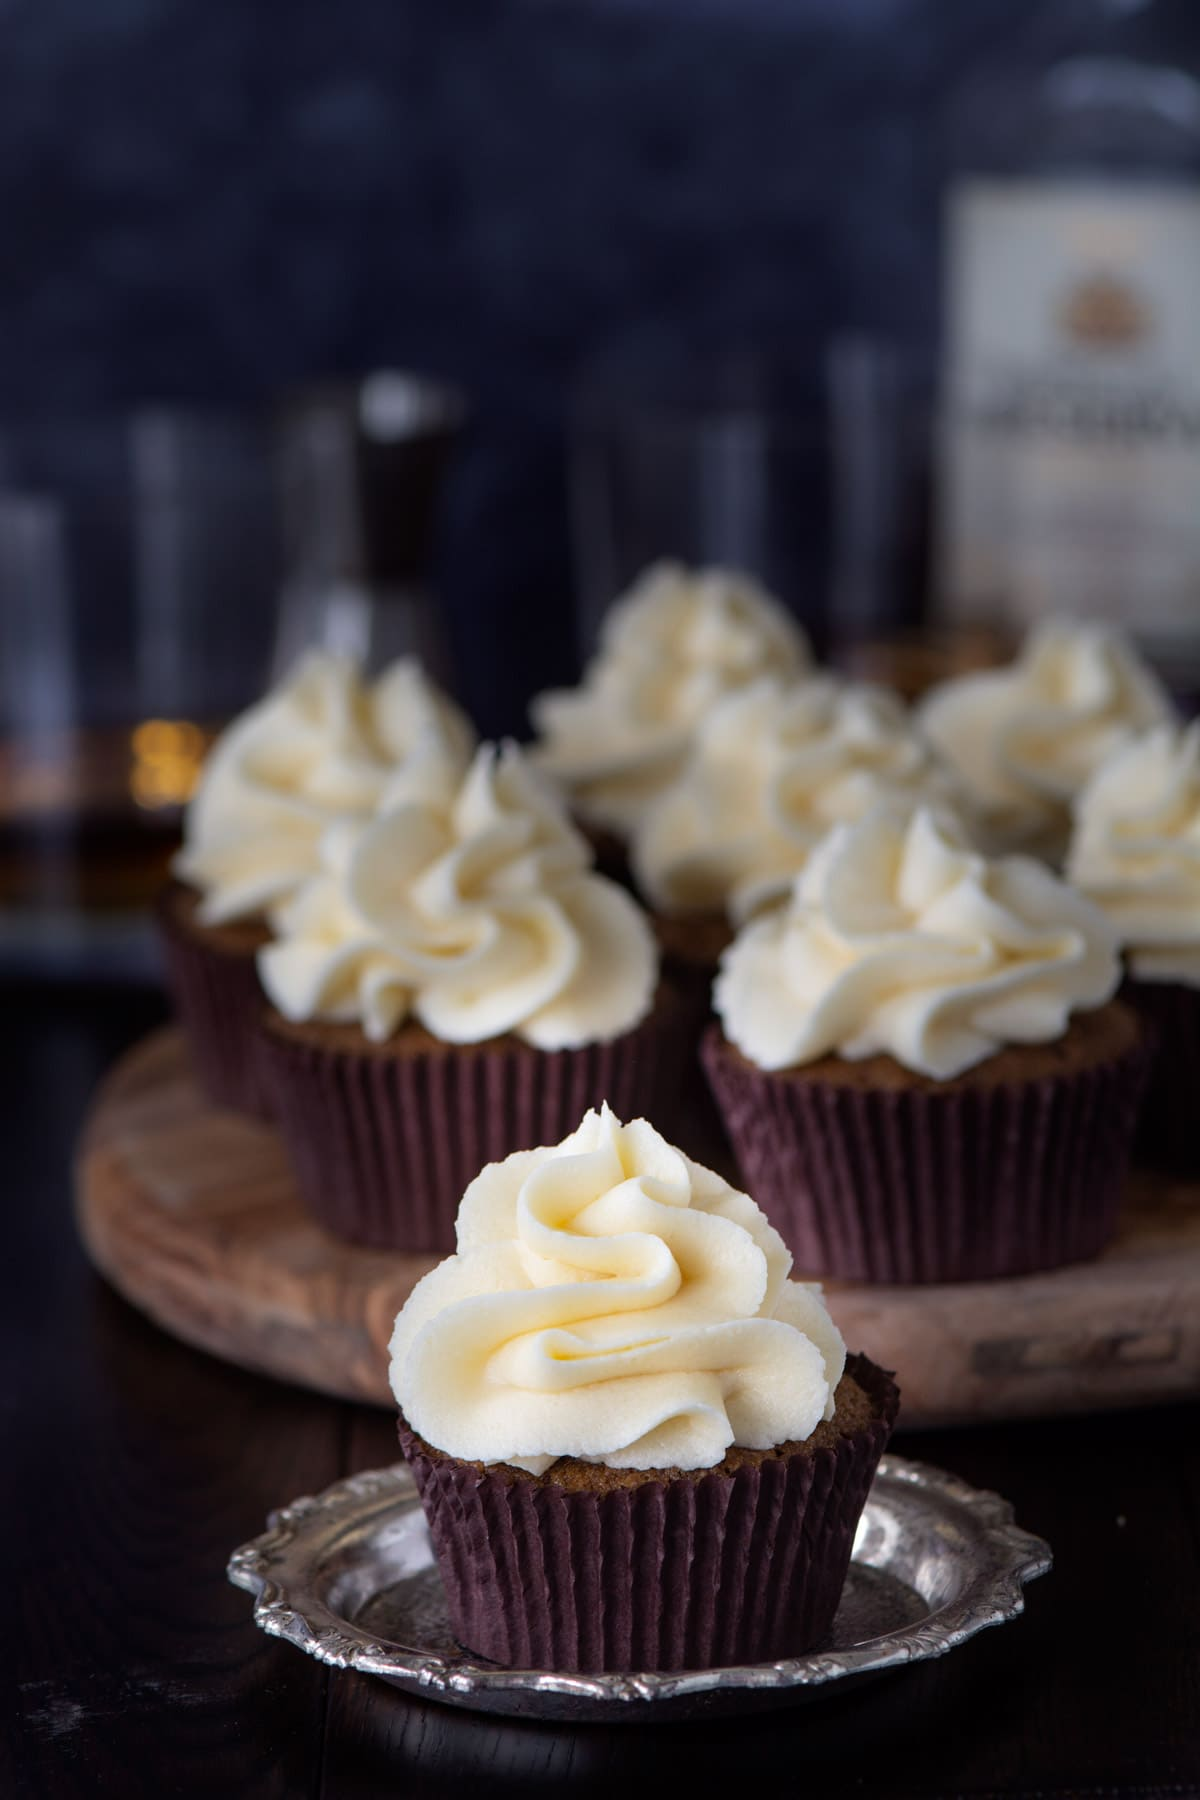 A coffee cupcake topped with whiskey buttercream. There are more cupcakes and a bottle and glasses of whiskey in the background.